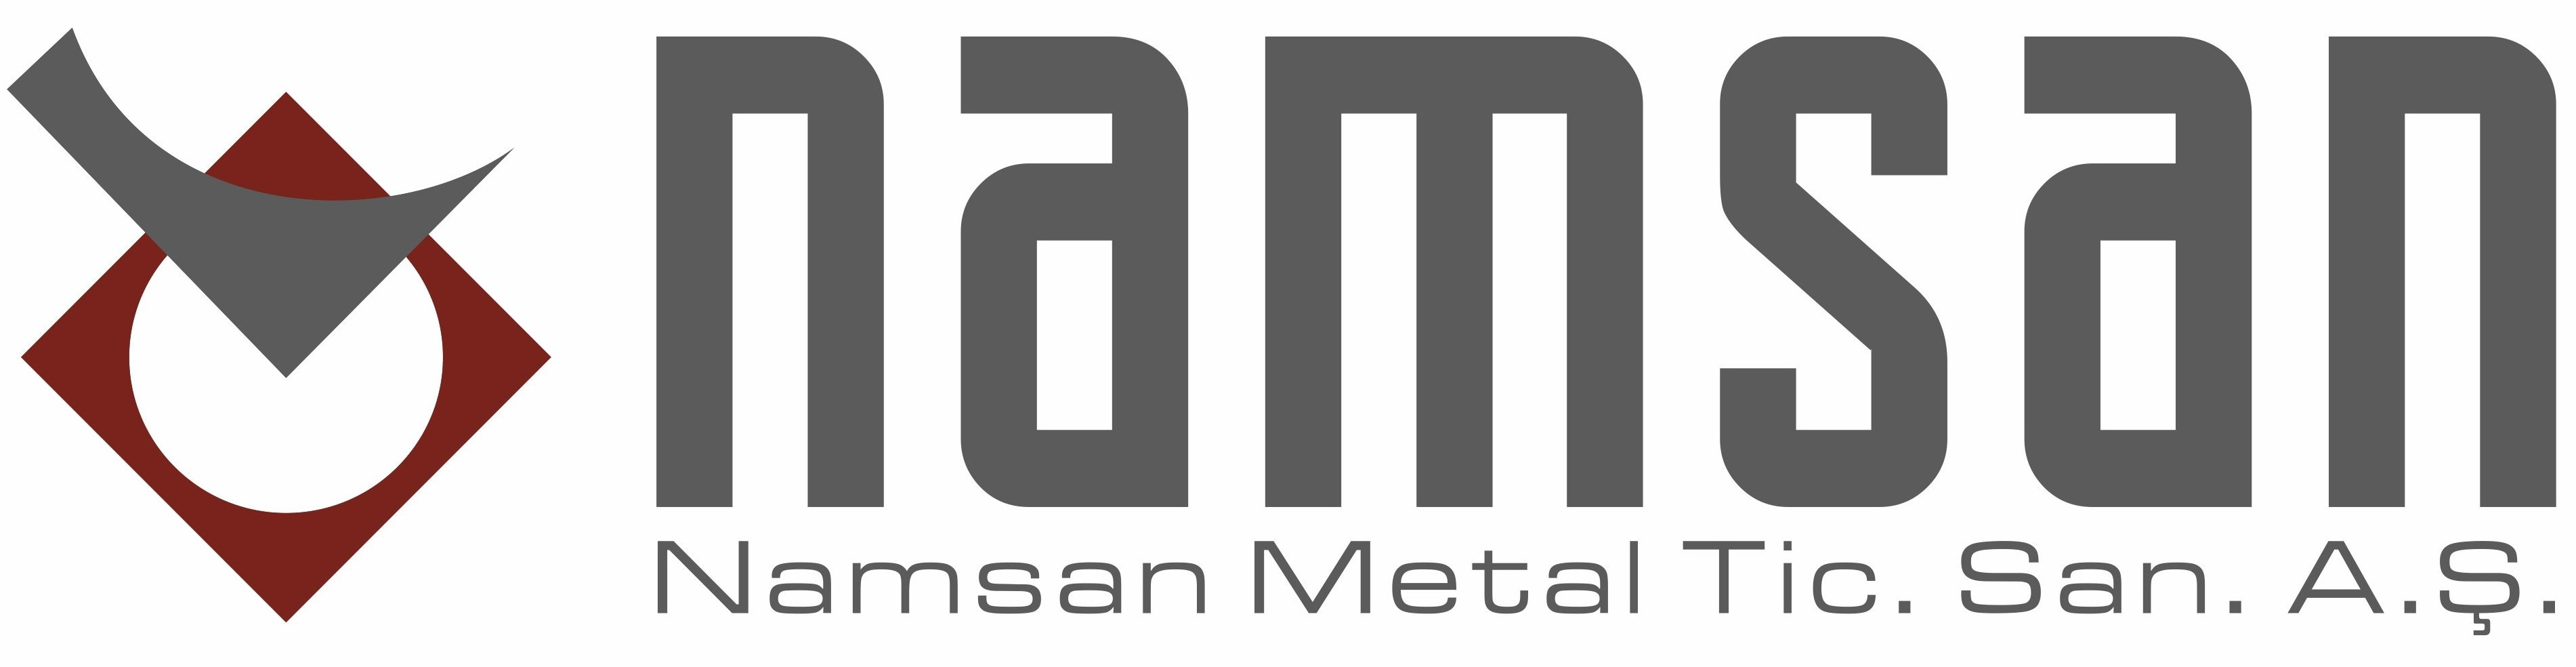 NAMSAN METAL TRADE INDUSTRY INC.